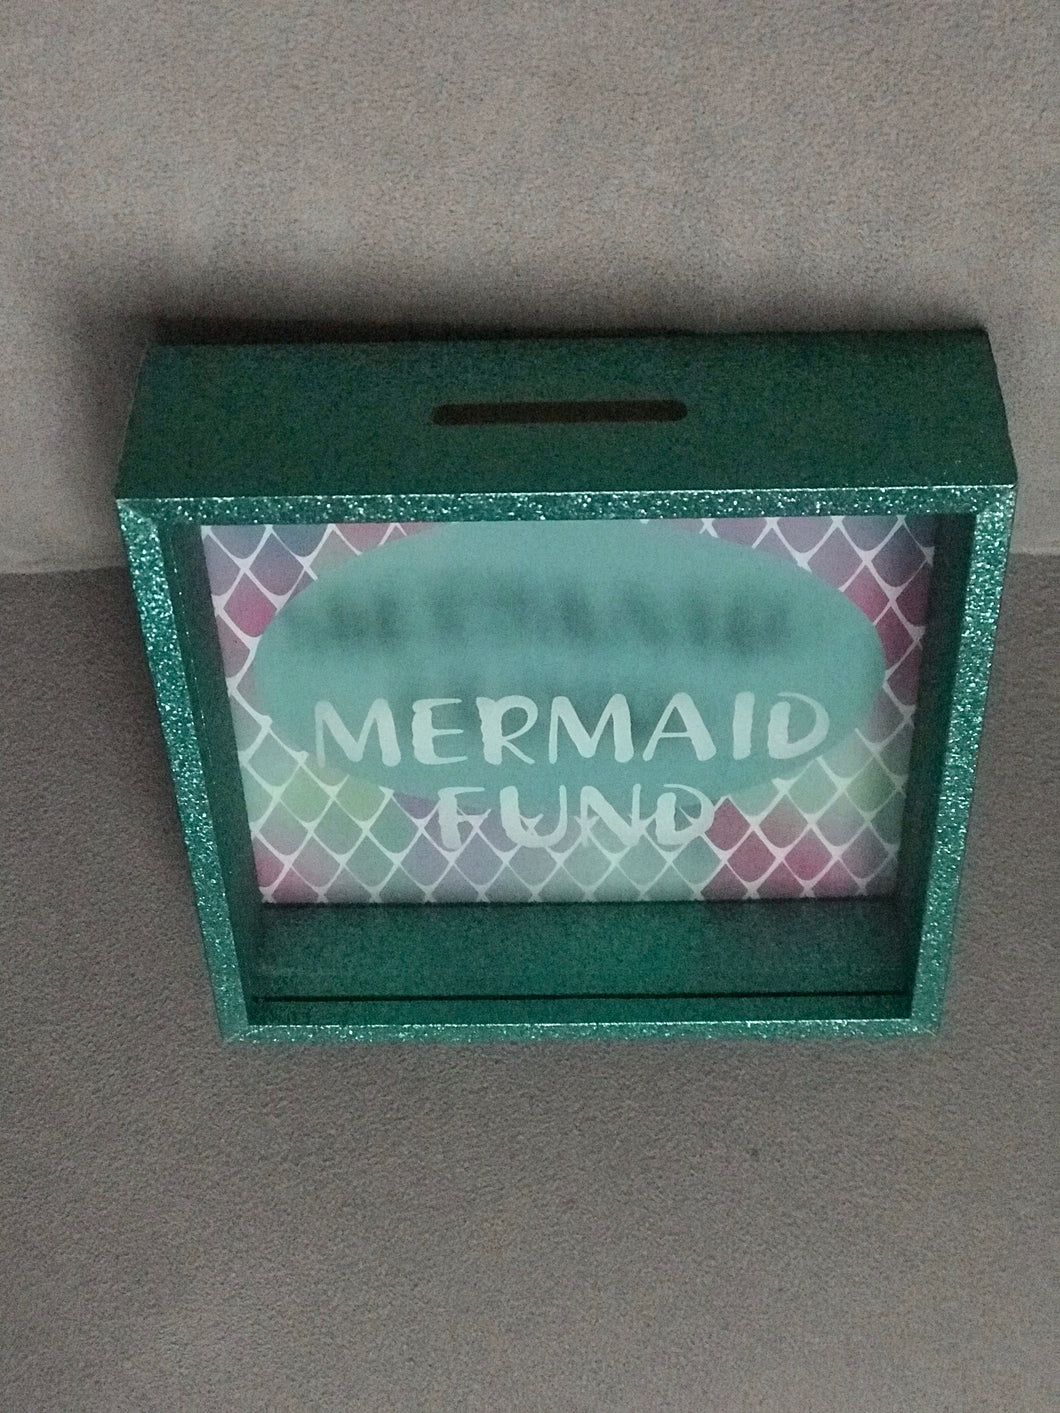 Mermaid Fame Coin Bank